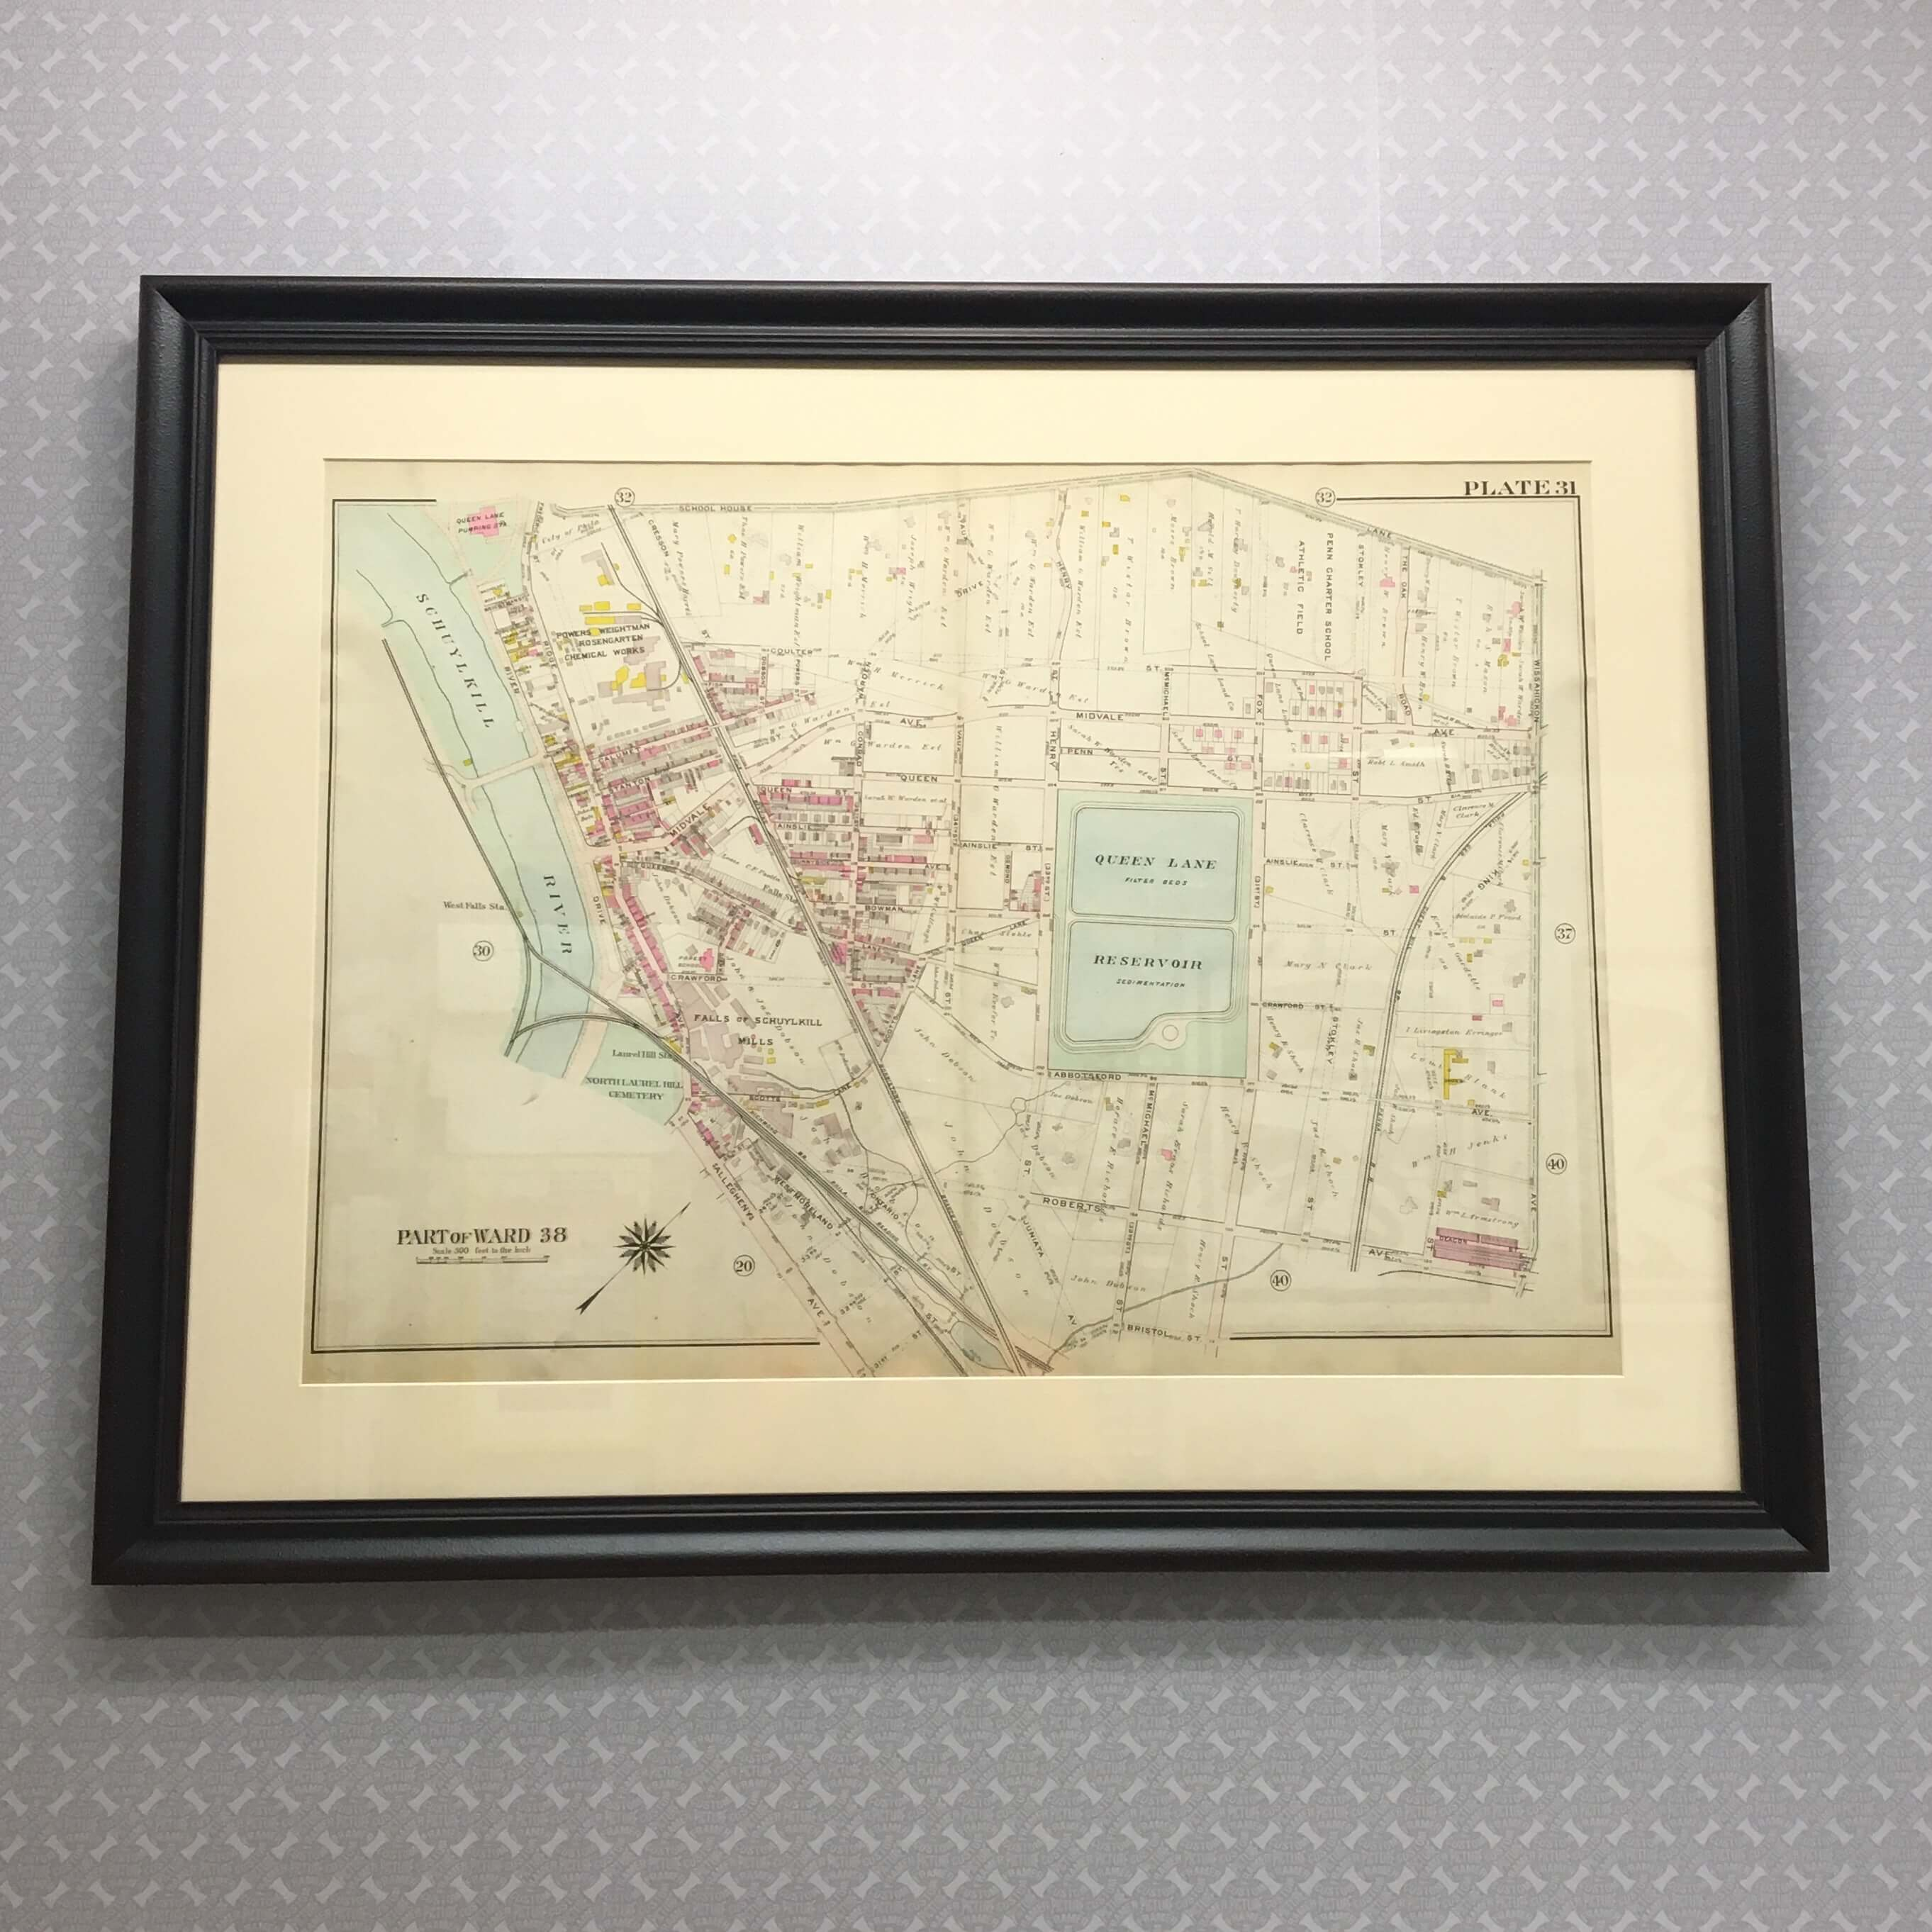 Early 20th century Philadelphia ward map of the East Falls neighborhood - custom framed in a rustic black profile. In addition to being useful, maps can be beautiful works of art. Frame and enjoy your favorite places, and share with others! For more information, stop in, visit us on the web (link in bio), or call 215-572-0679.